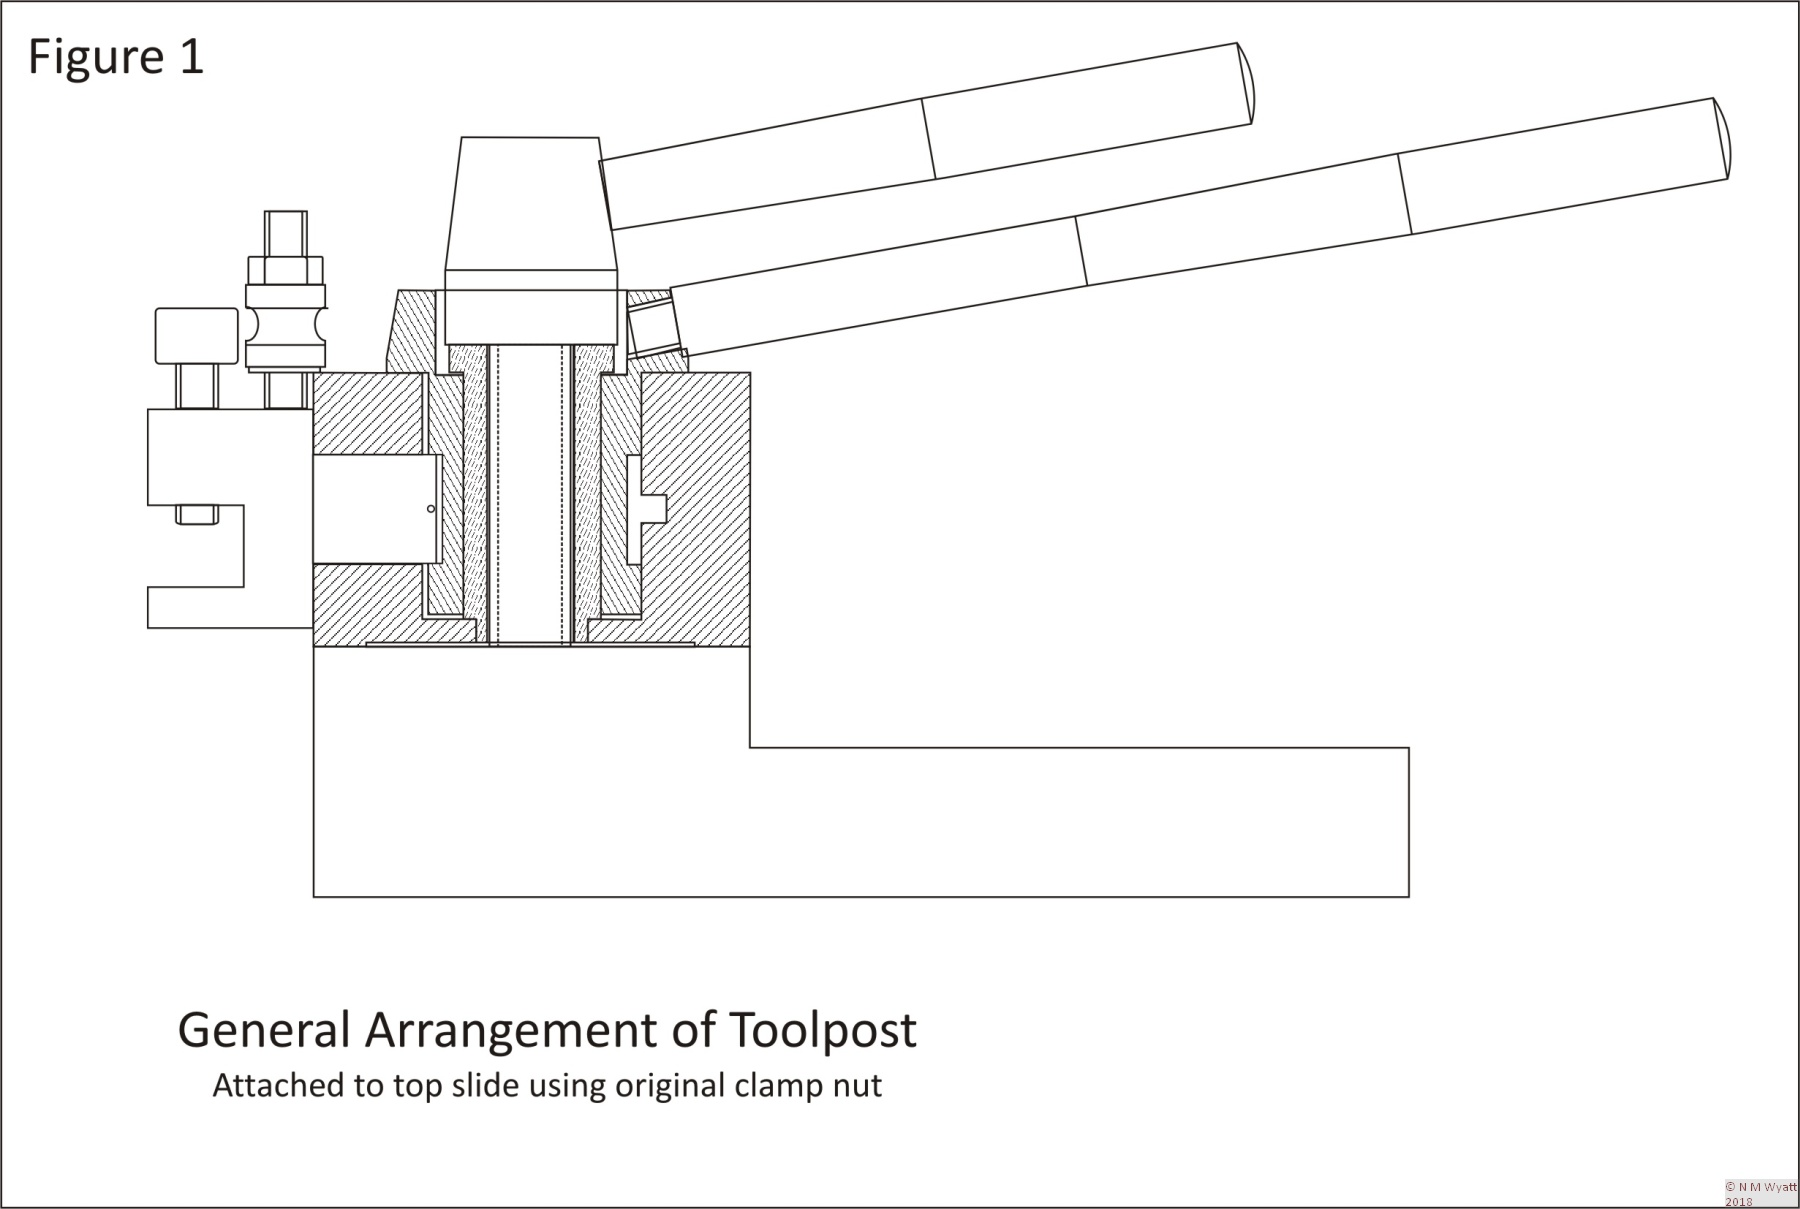 General Arrangement of Quick Change Toolpost